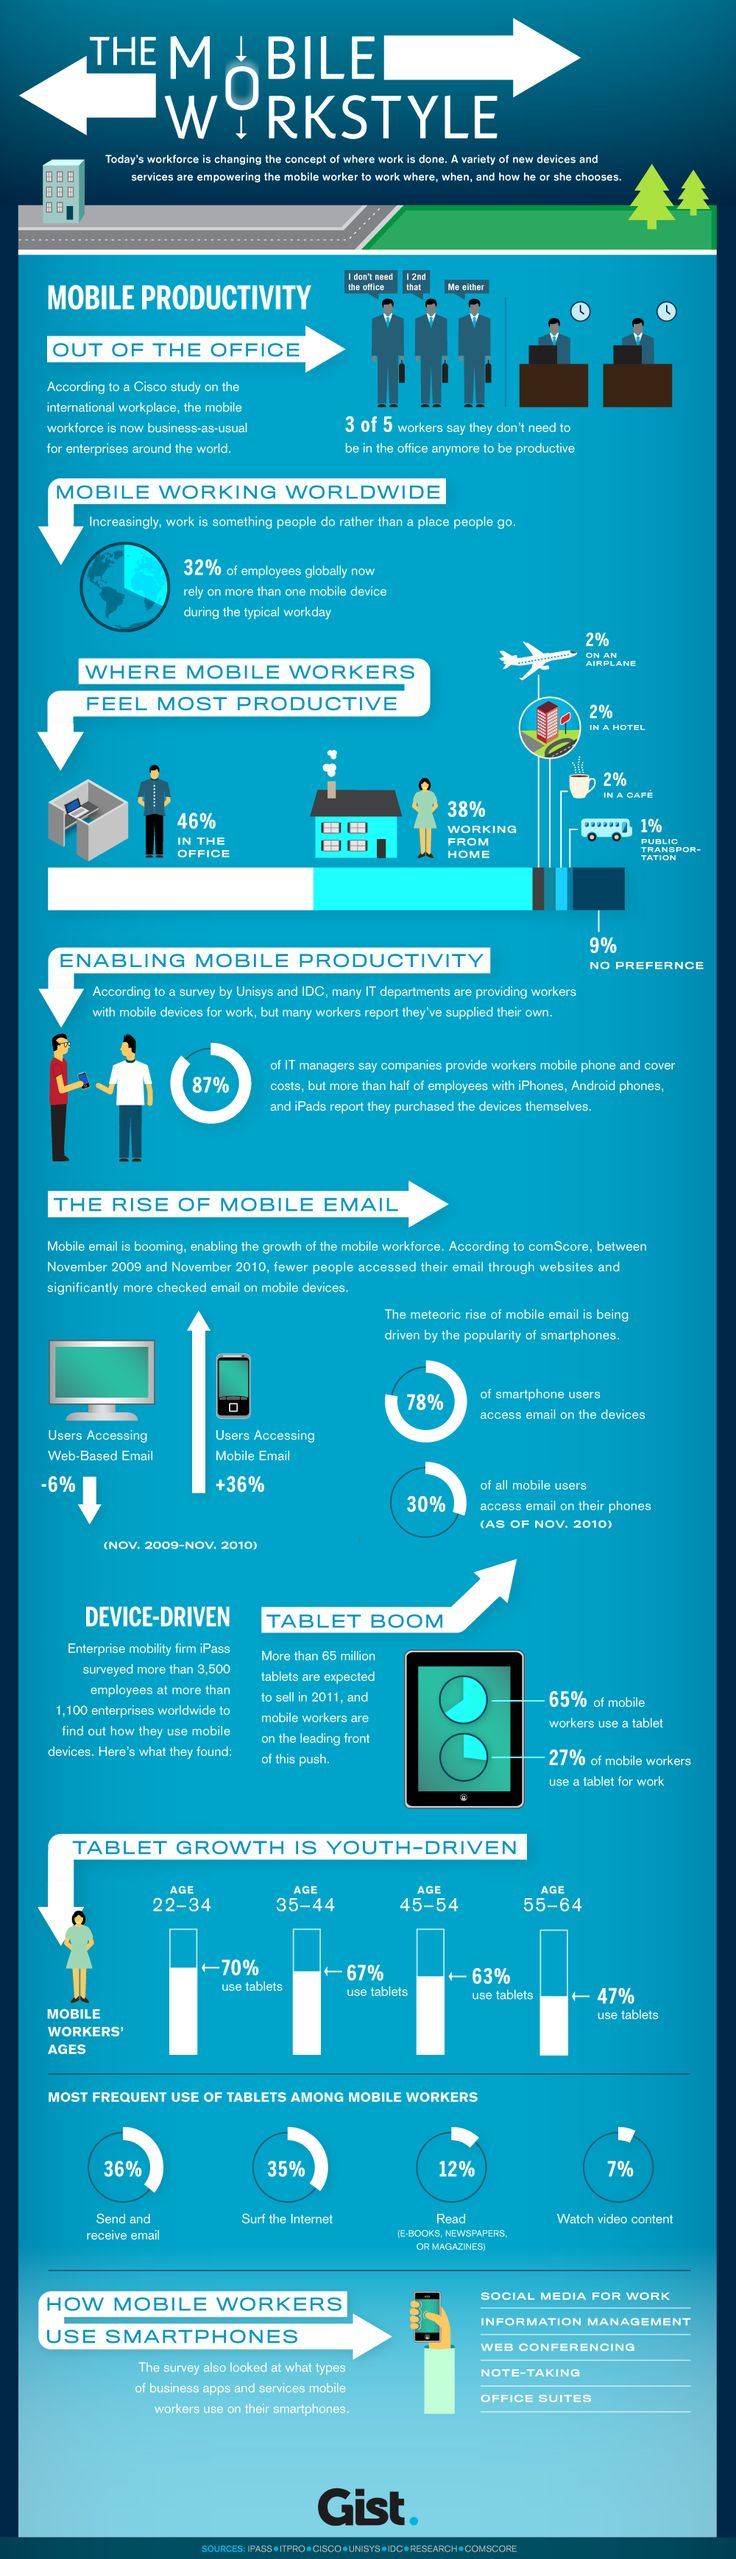 Mobile Learning preferences in the workplace